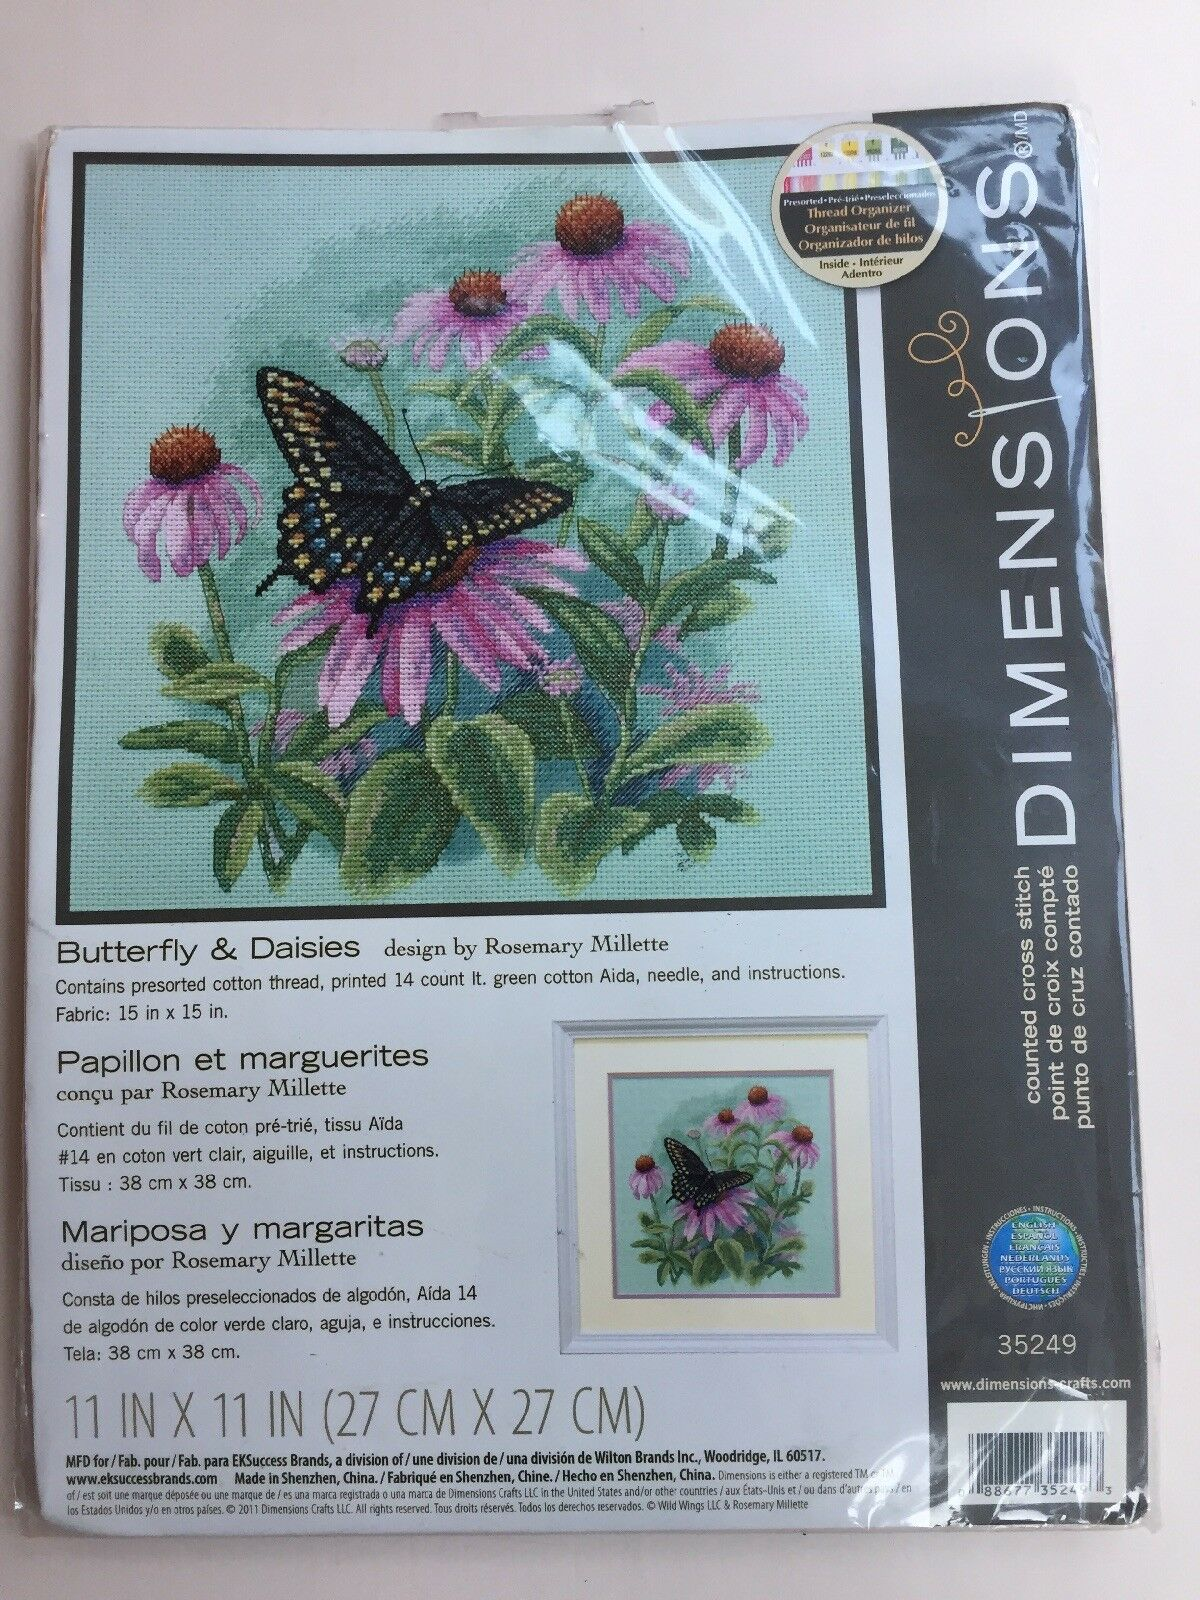 Dimensions 35249 Needlecrafts Counted Cross Stitch Butterfly and Daisies